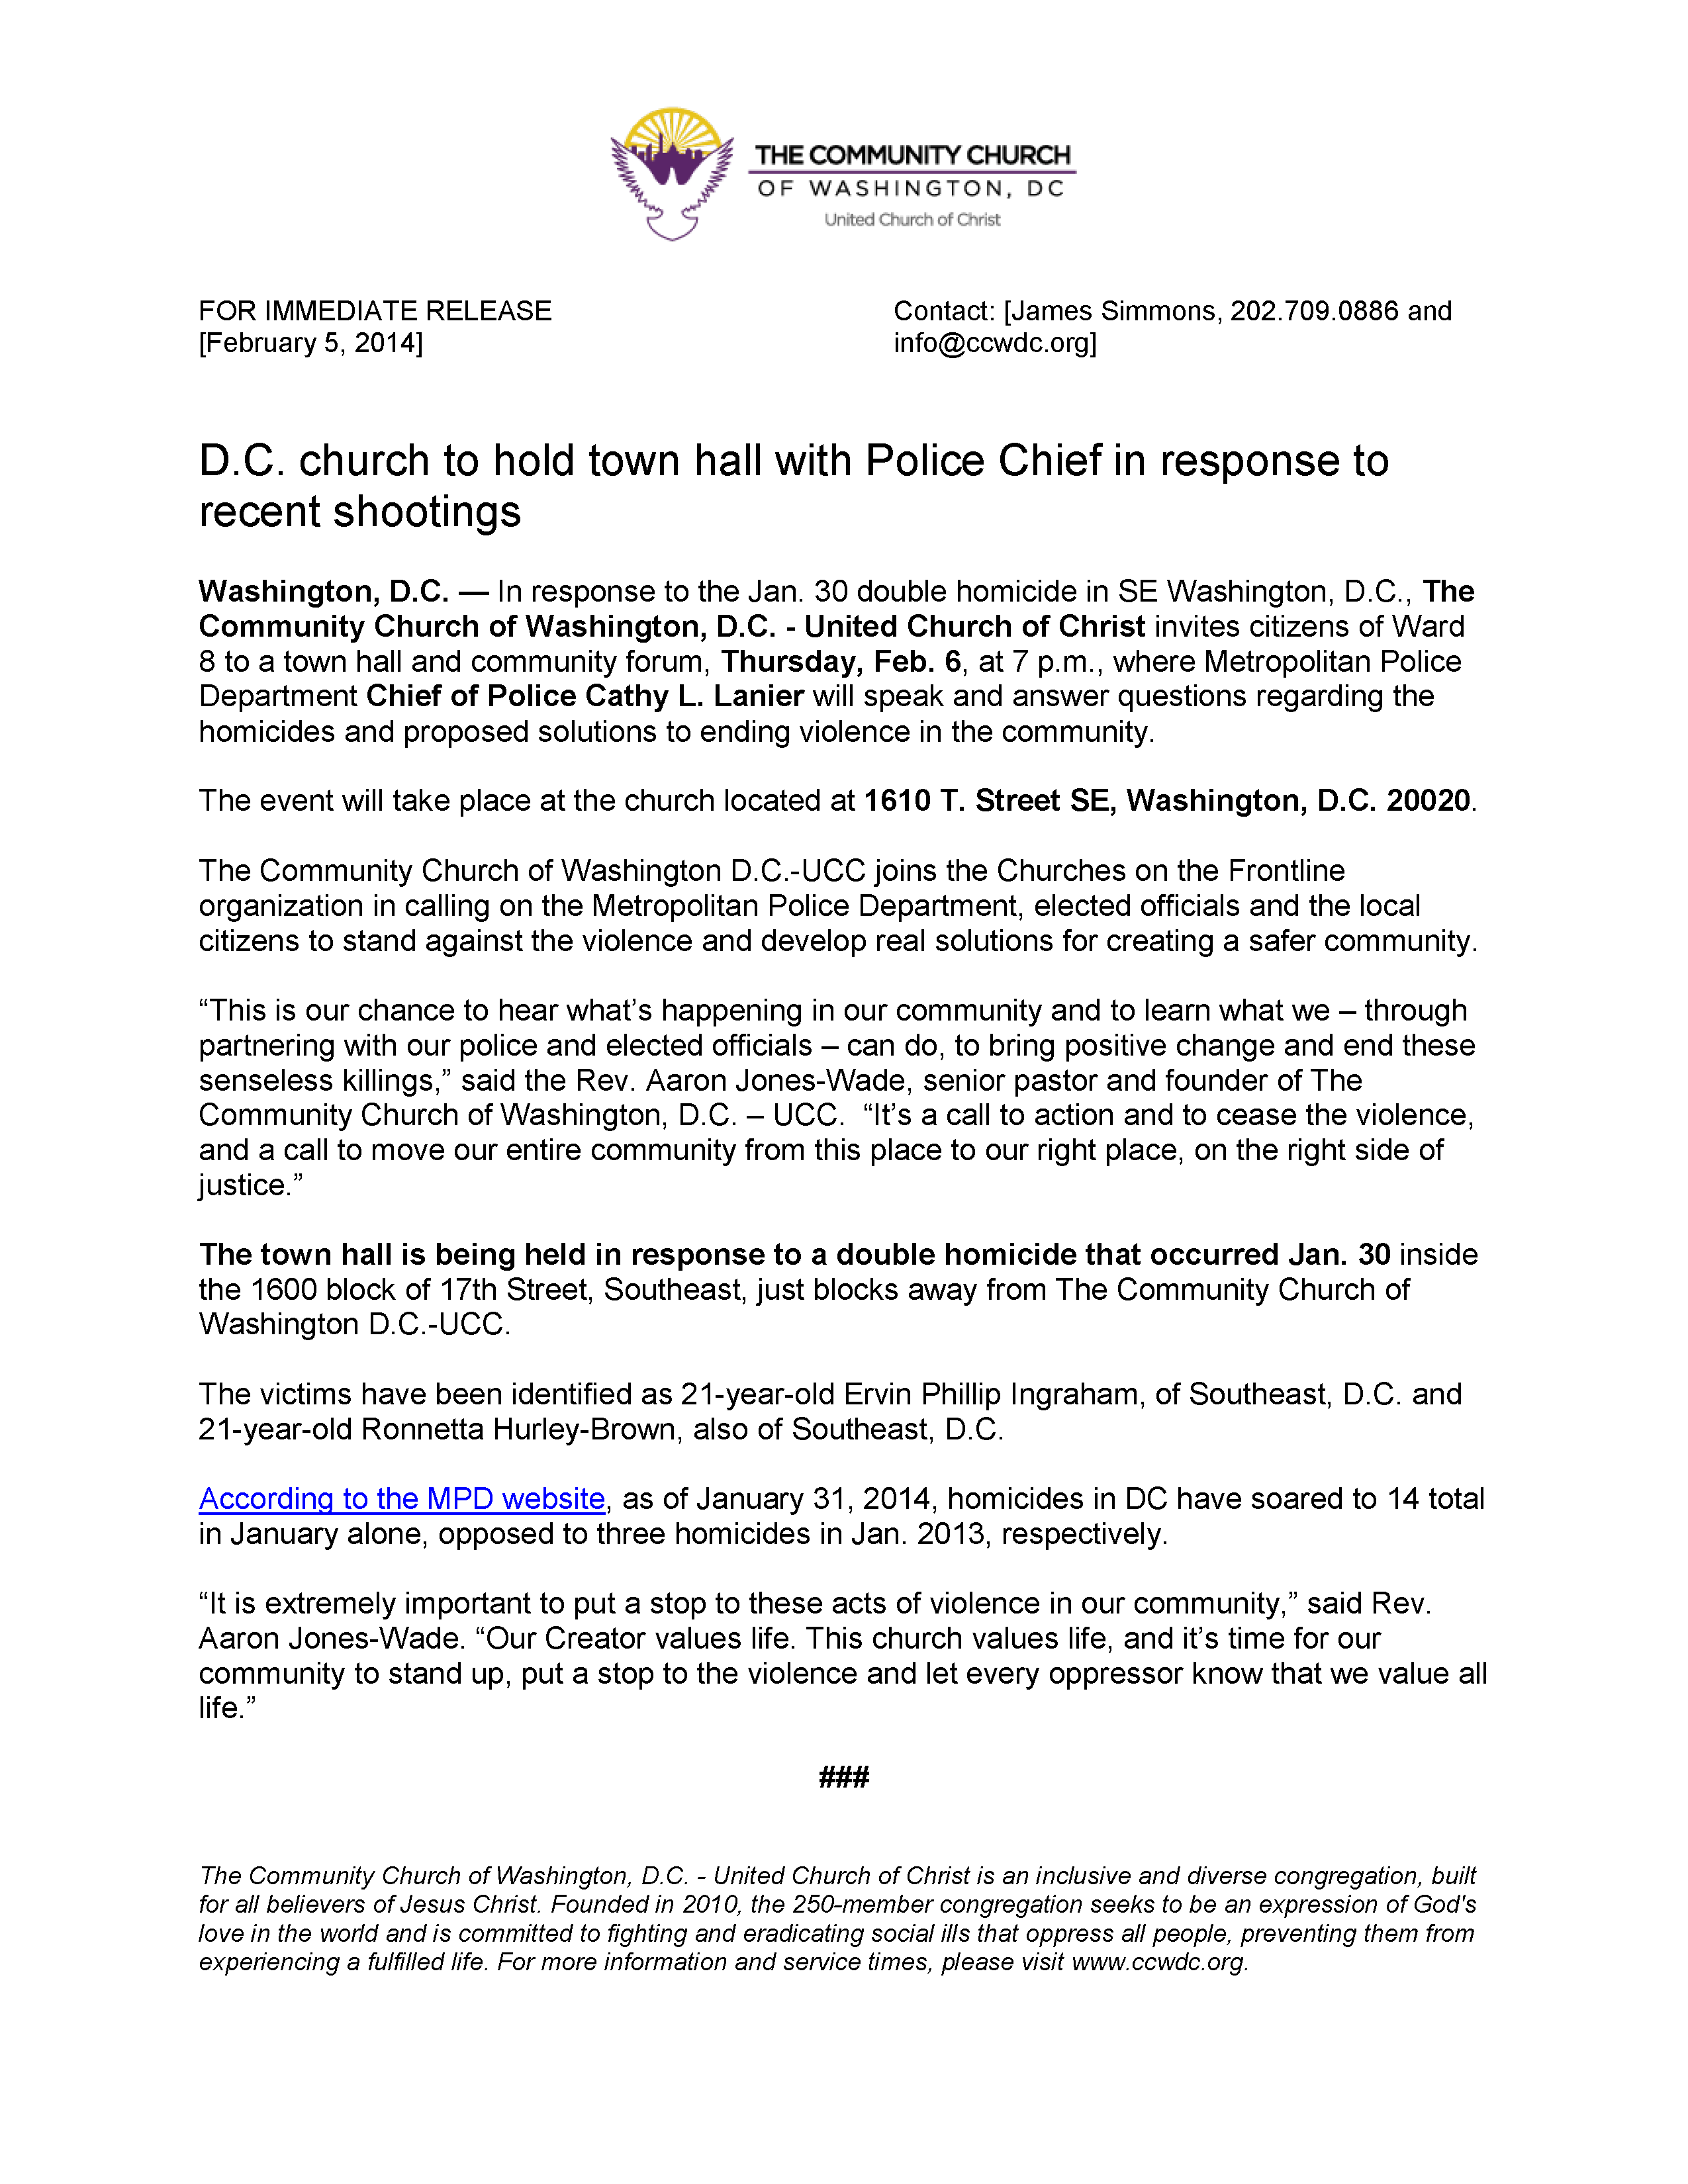 FEB2014 Call To Action Homicide  press-release